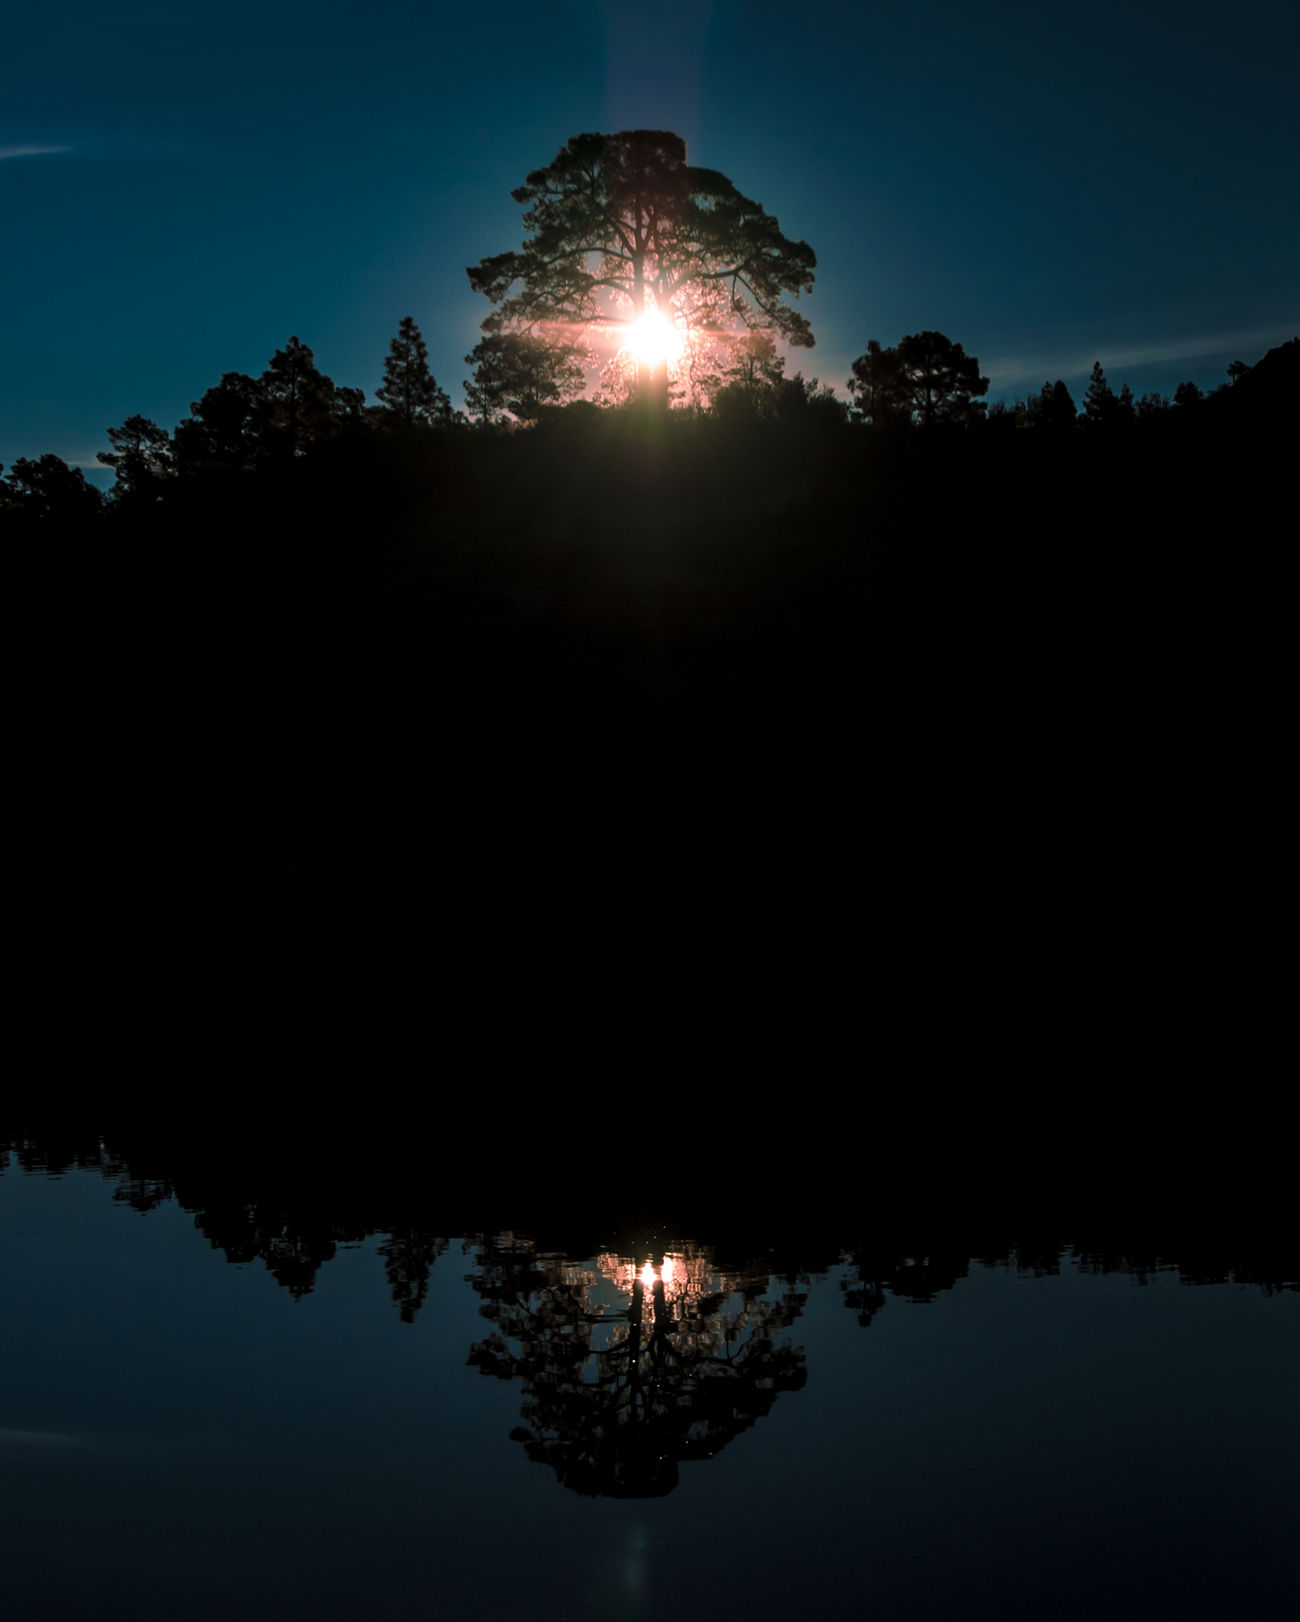 Sunrise through a tree mirrored in the water Beautiful Nature Beauty In Nature Dawn Dawn Of A New Day Double Eye4photography  EyeEm Best Shots EyeEm Nature Lover Landscape Landscape_Collection Landscape_photography Magic Moments Mirroring In Water Mystic No People Outdoor Photography Outdoors Outdoors Photograpghy  Reflection Sky Sunrise Travel Photography Tree Water